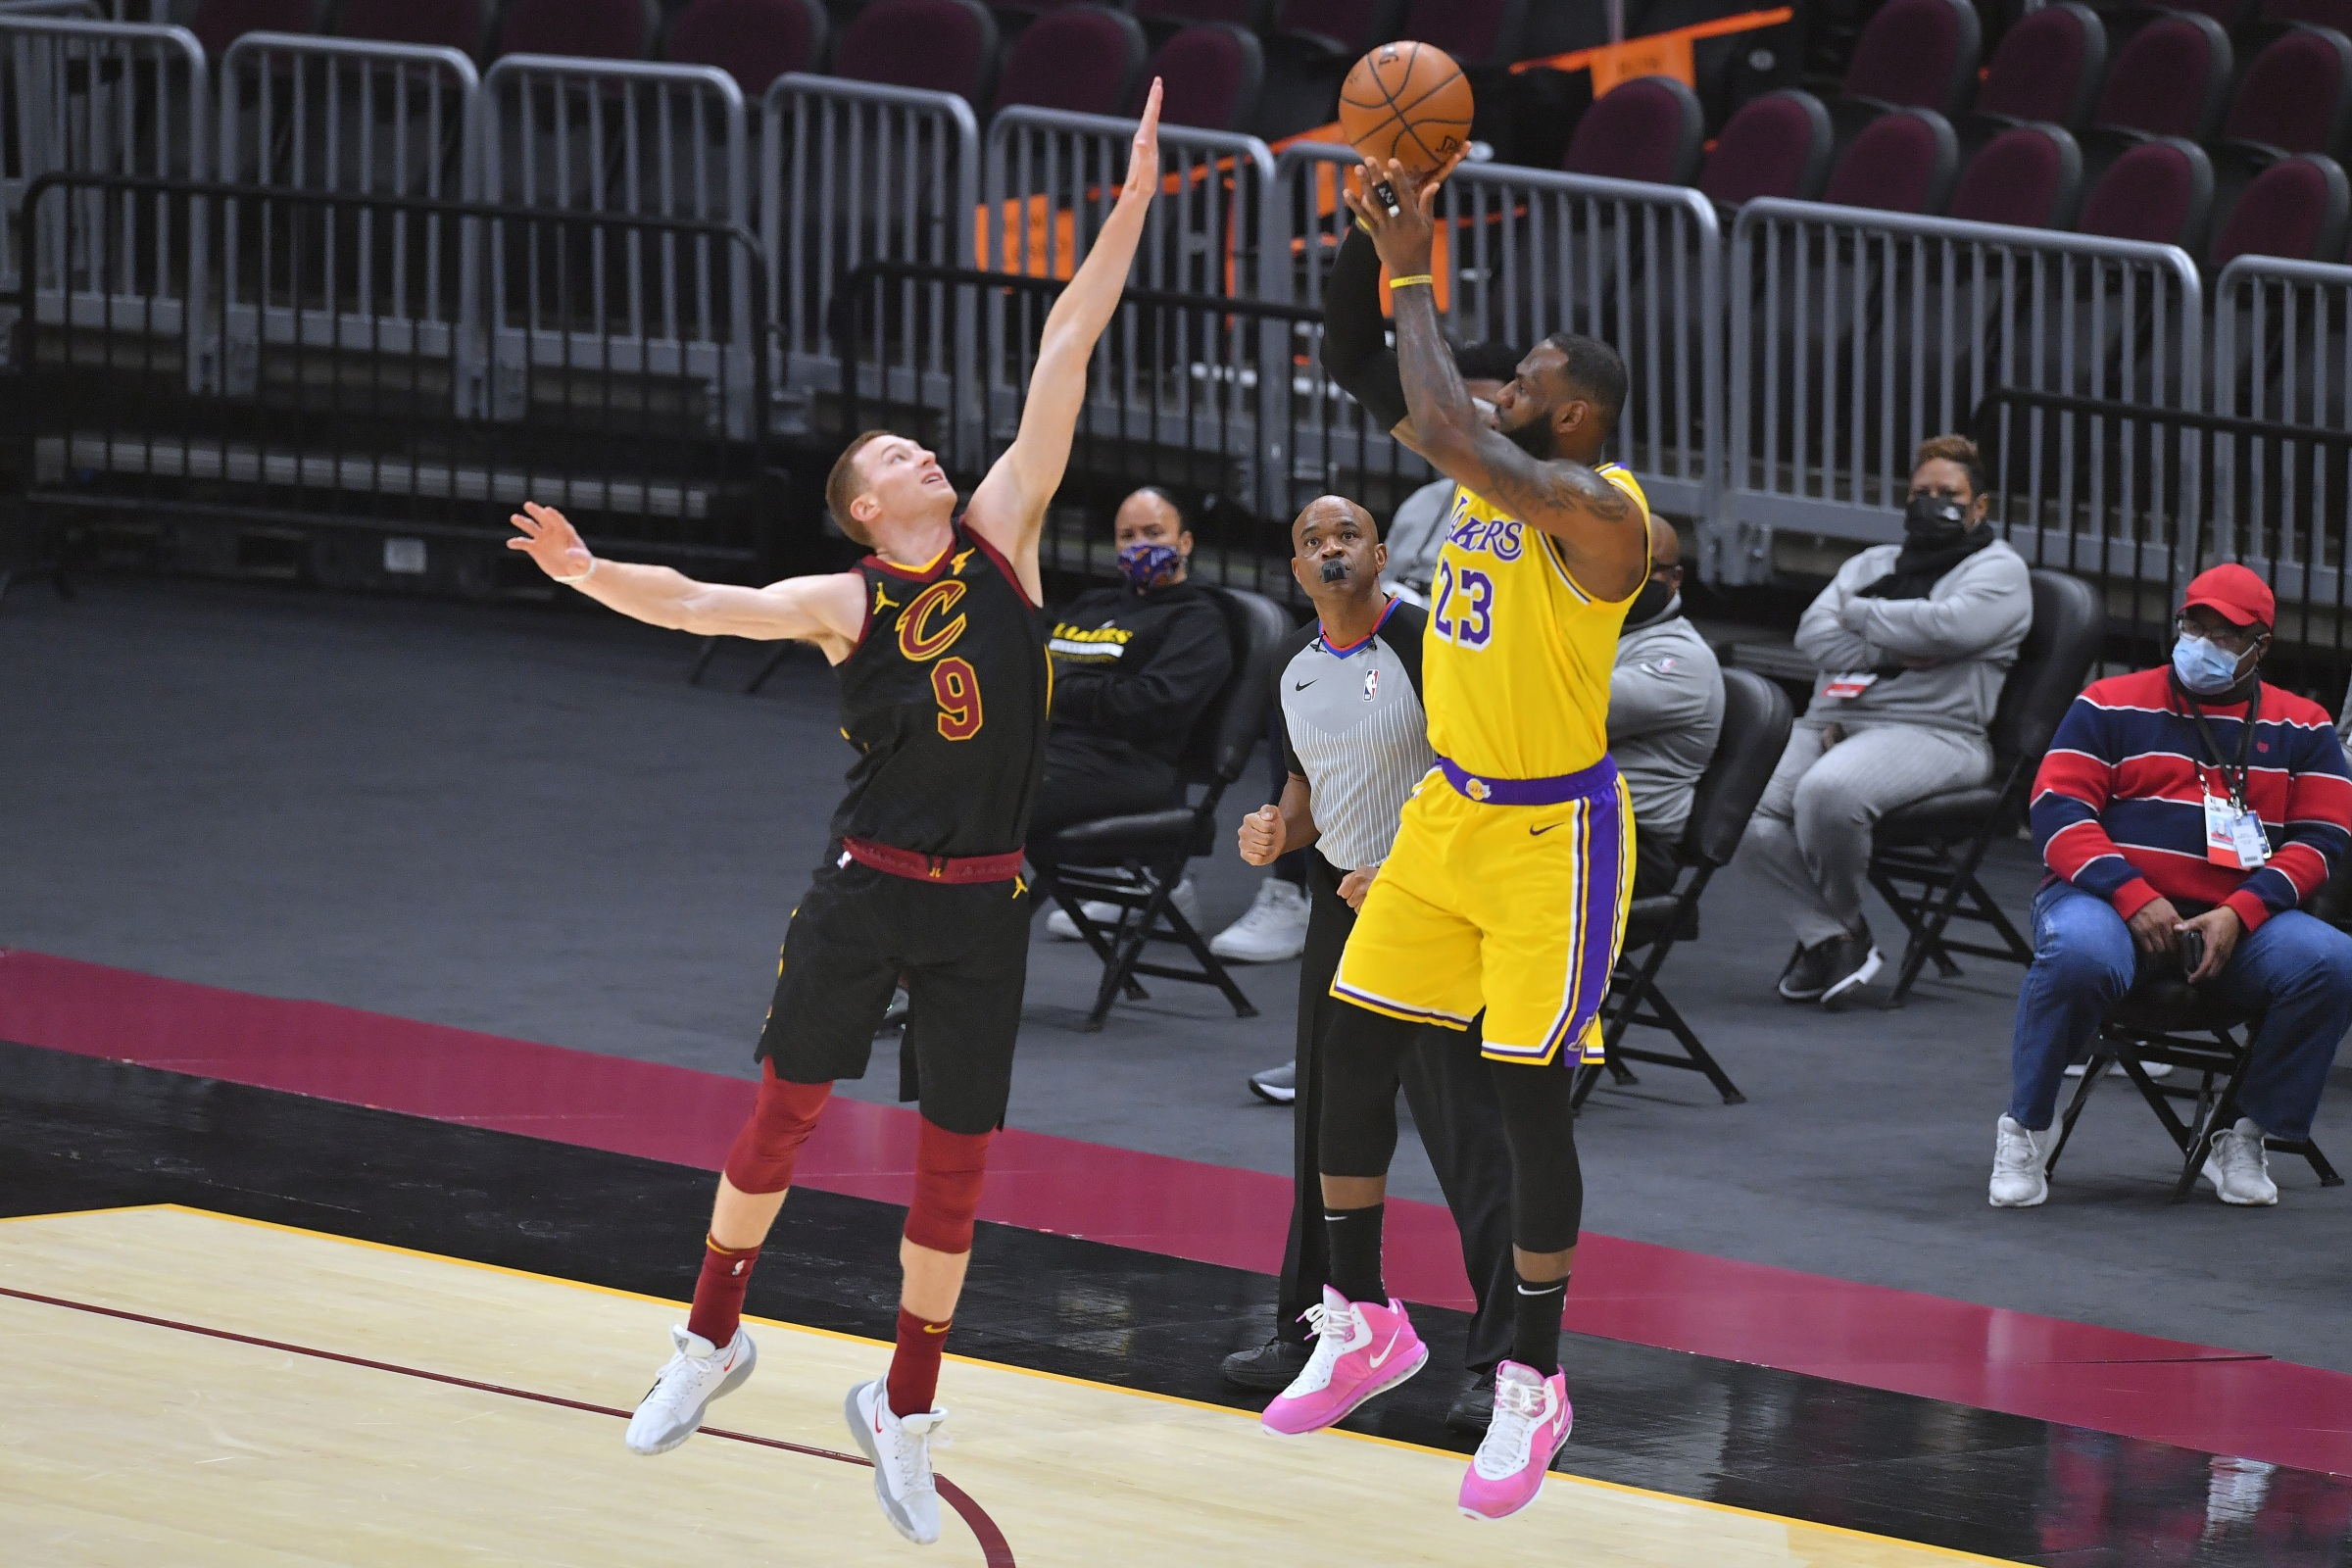 LeBron James shoots over a member of the Cleveland Cavaliers